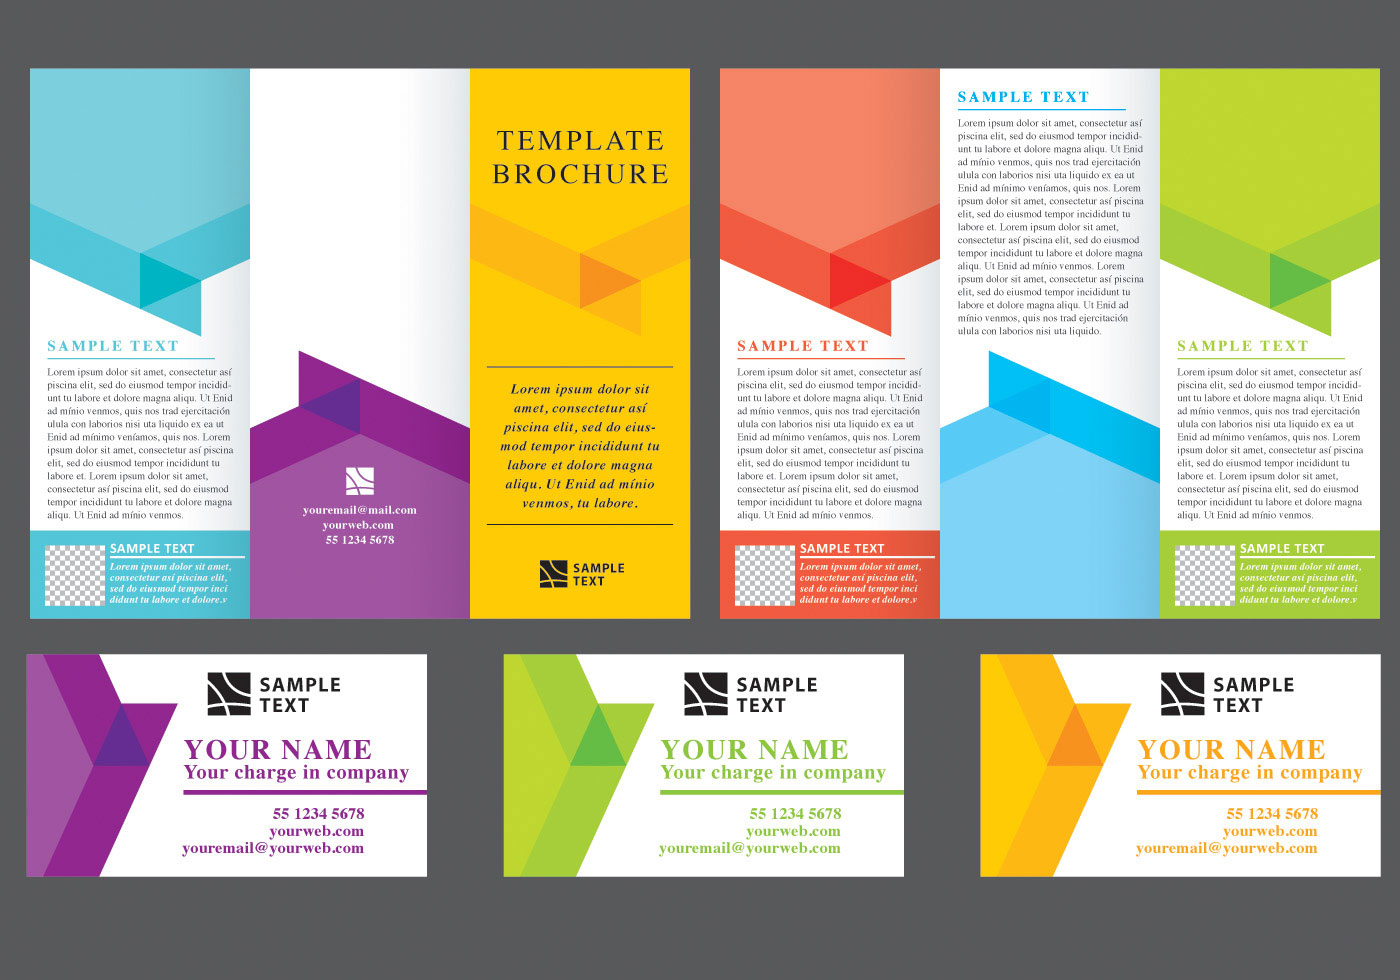 Chevron fold brochure vectors download free vector art for Brochure template